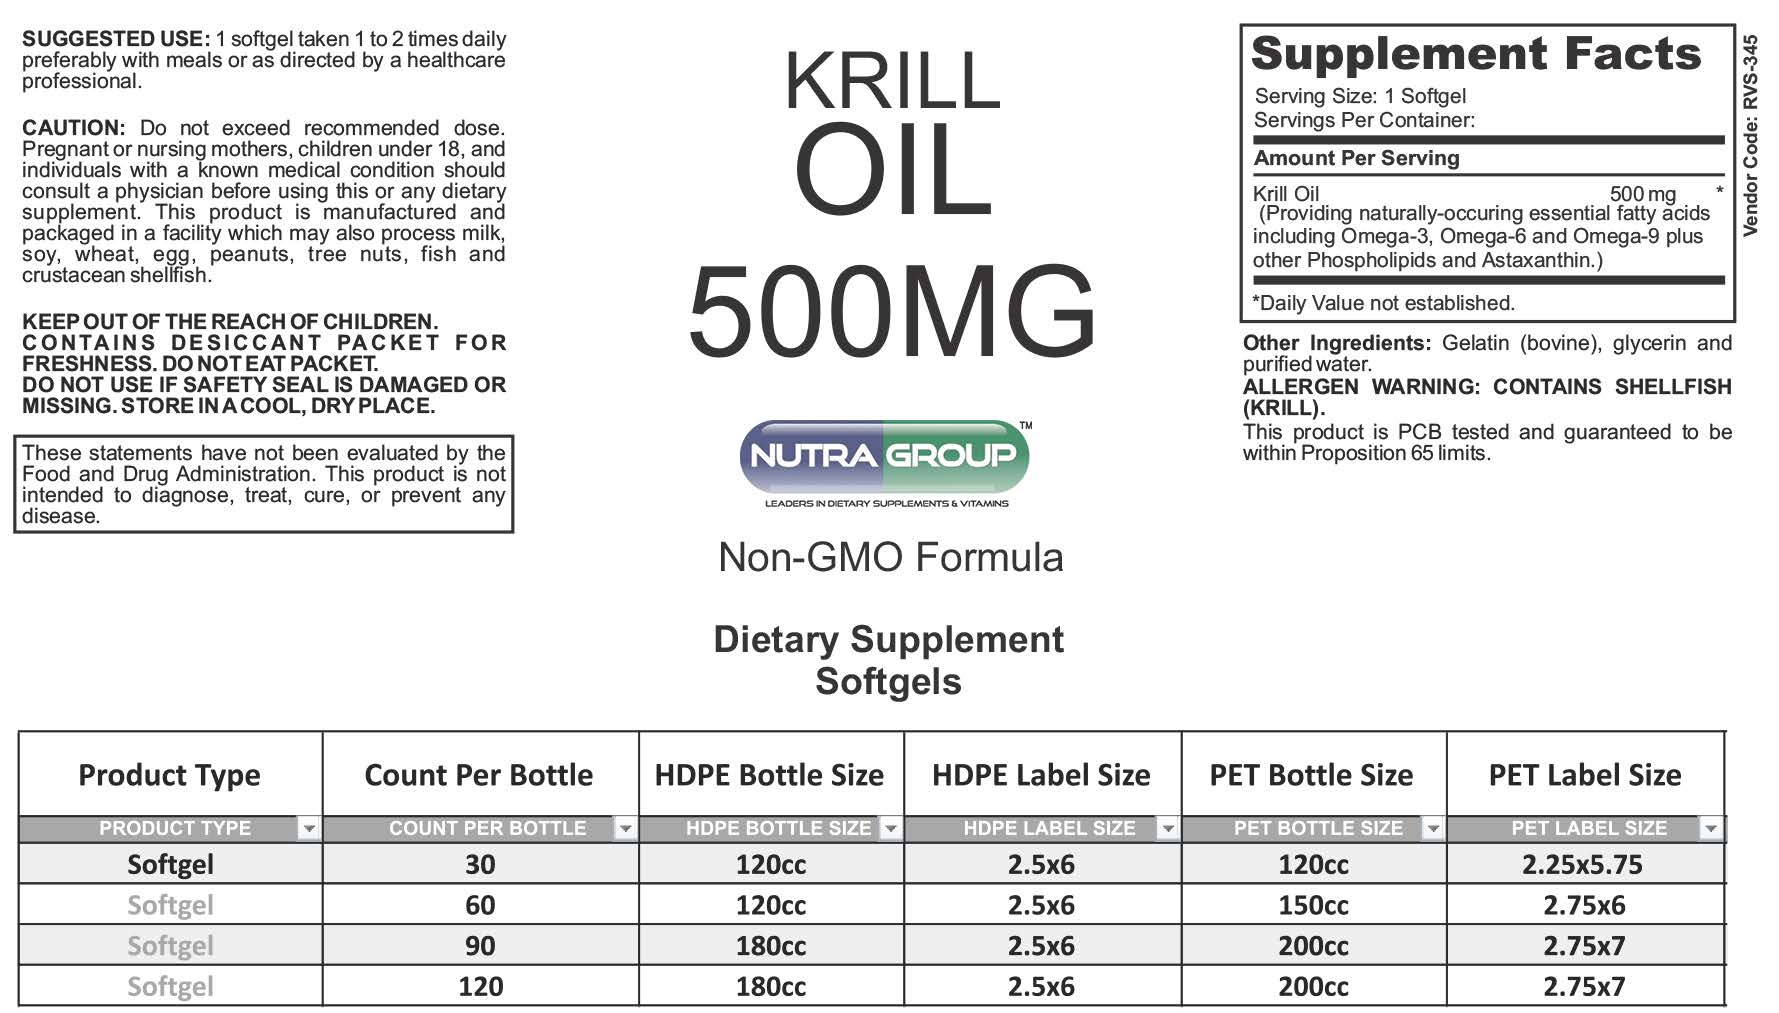 Private label Krill Oil supplements